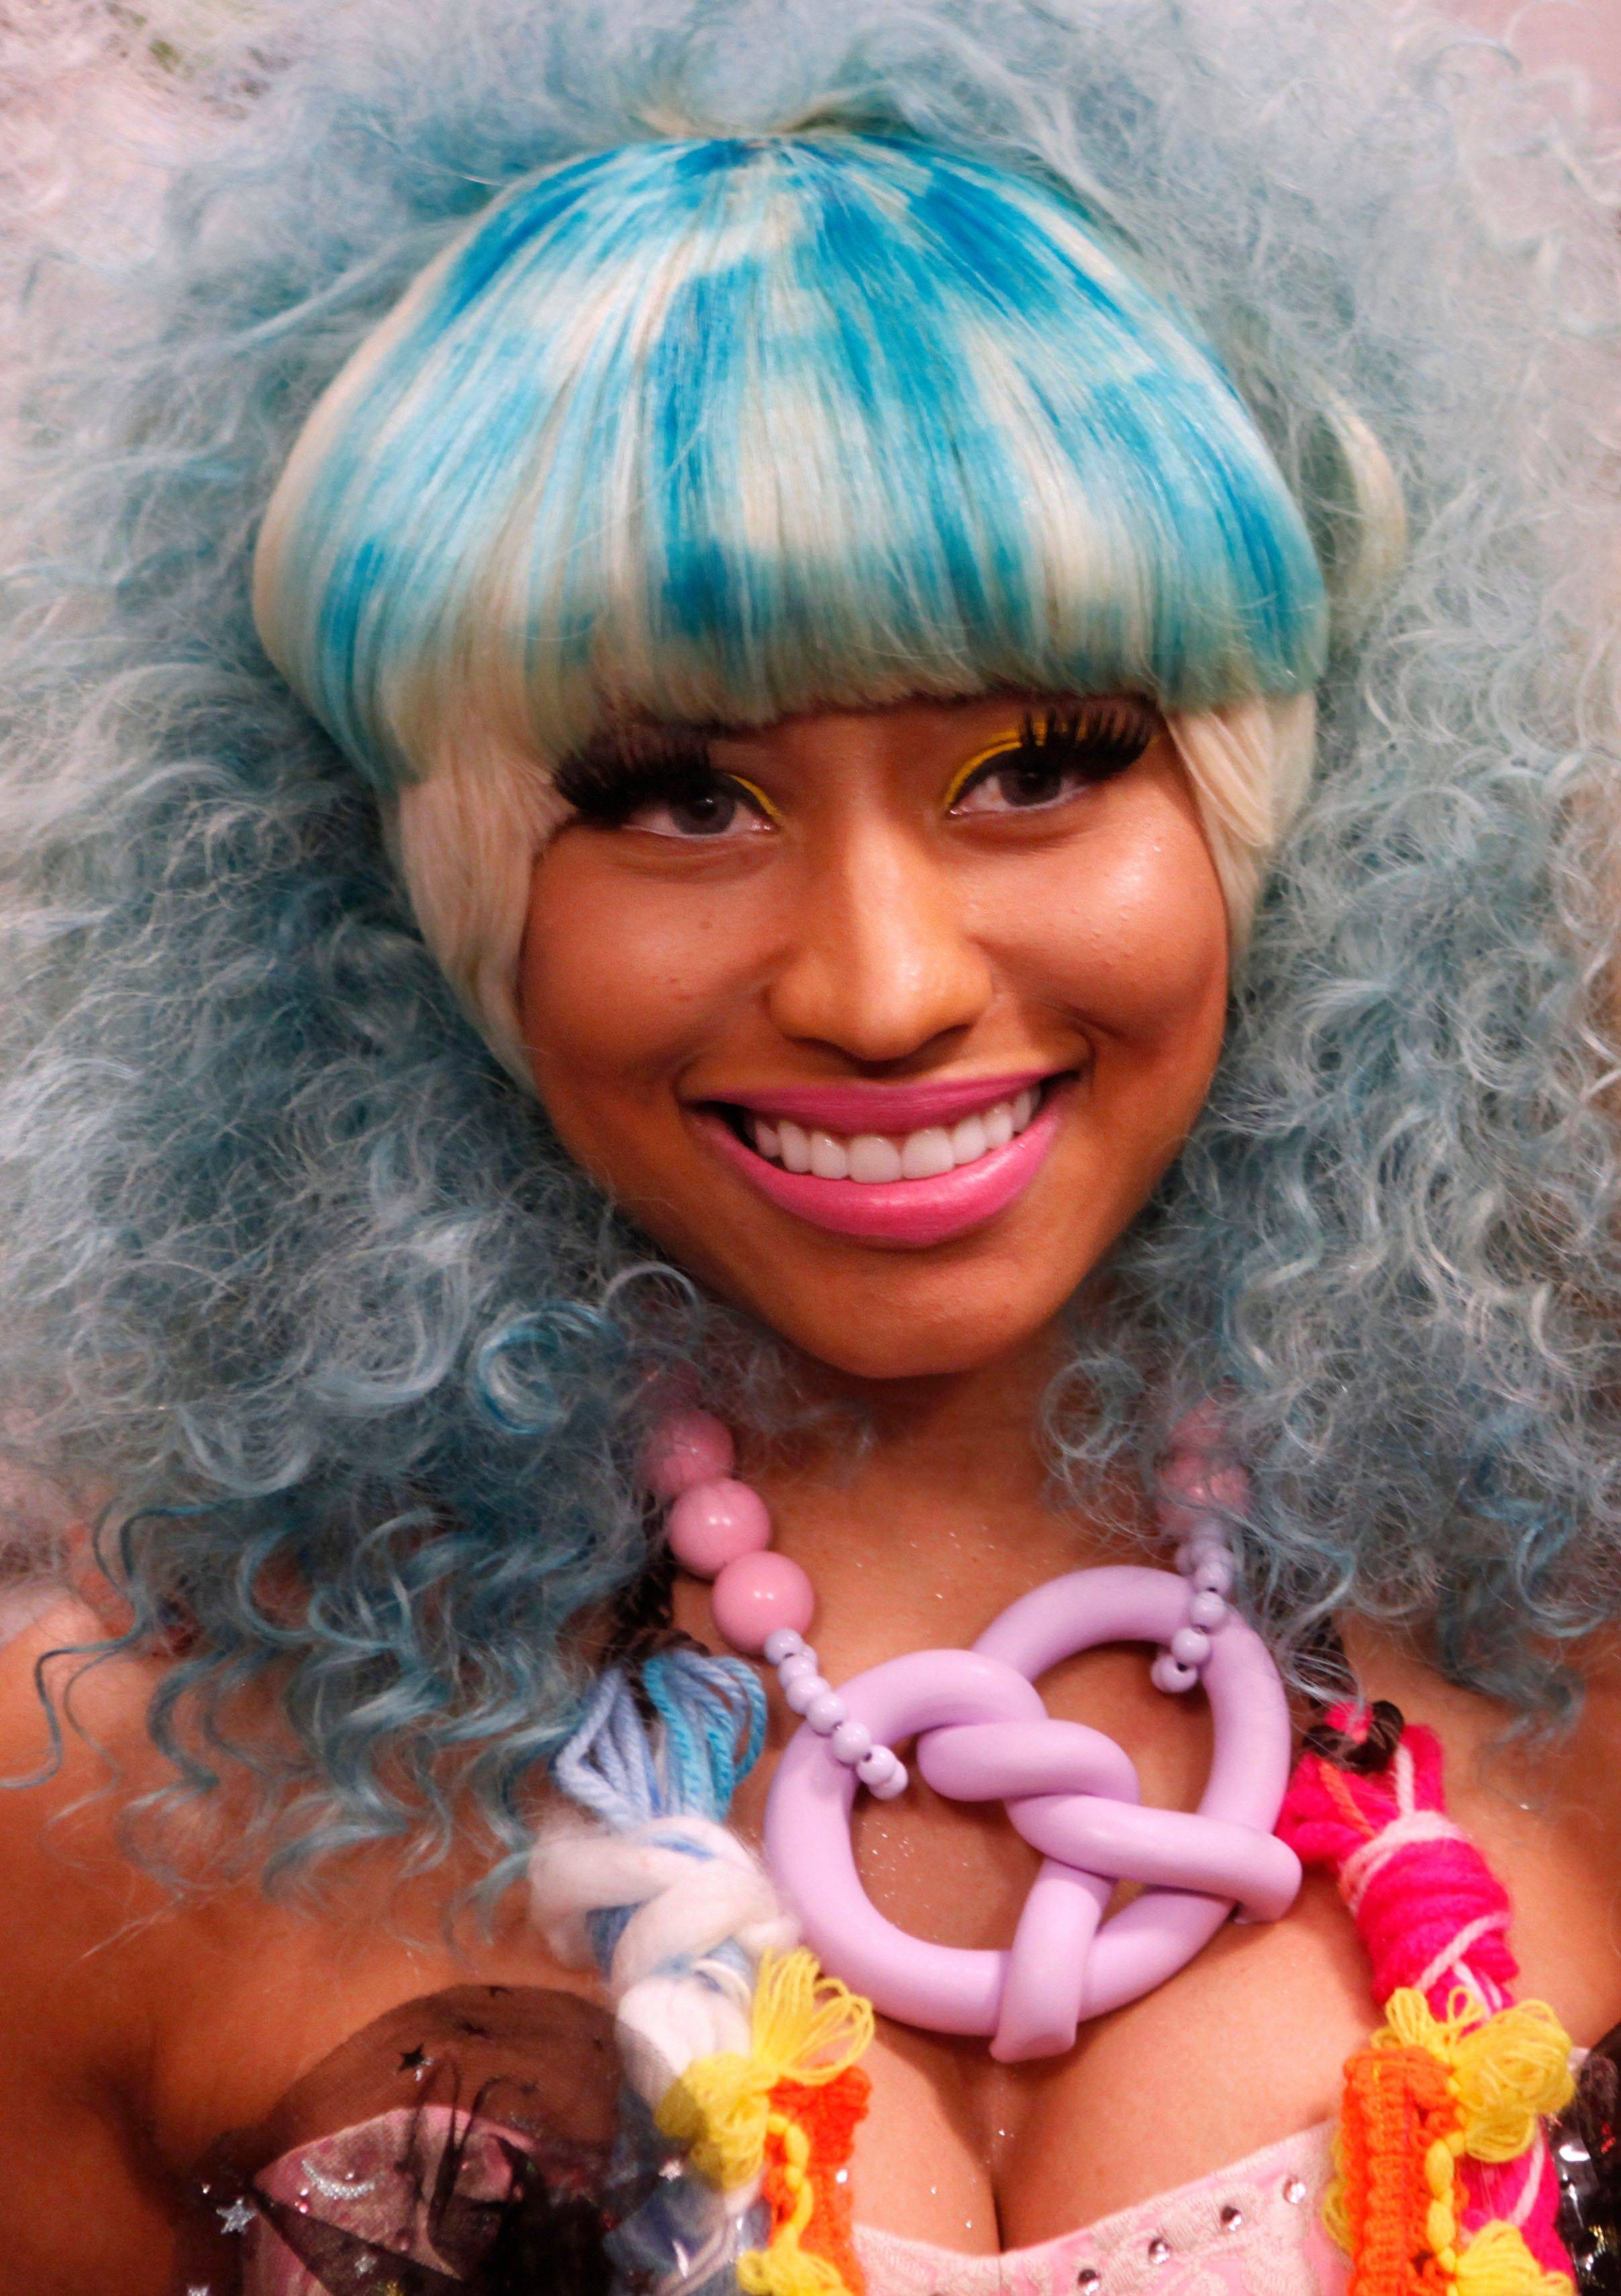 Singer Nicki Minaj poses backstage the Betsey Johnson Spring 2012 collection show during Fashion Week, Monday, Sept. 12, 2011, in New York.